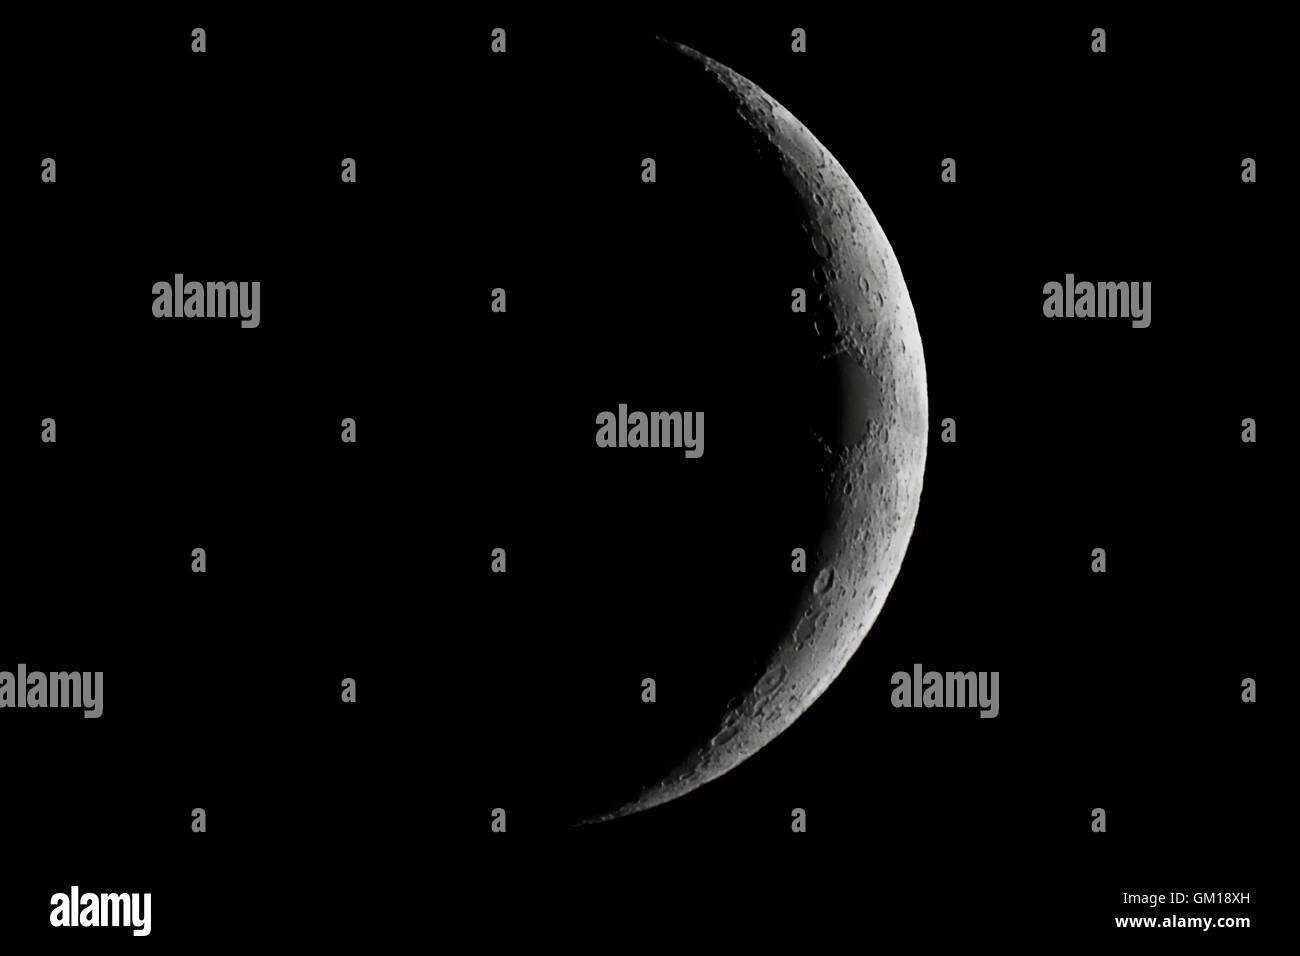 Moon waxing crescent. Young Moon. Crescent moon on black sky. Waxing Crescent. - Stock Image